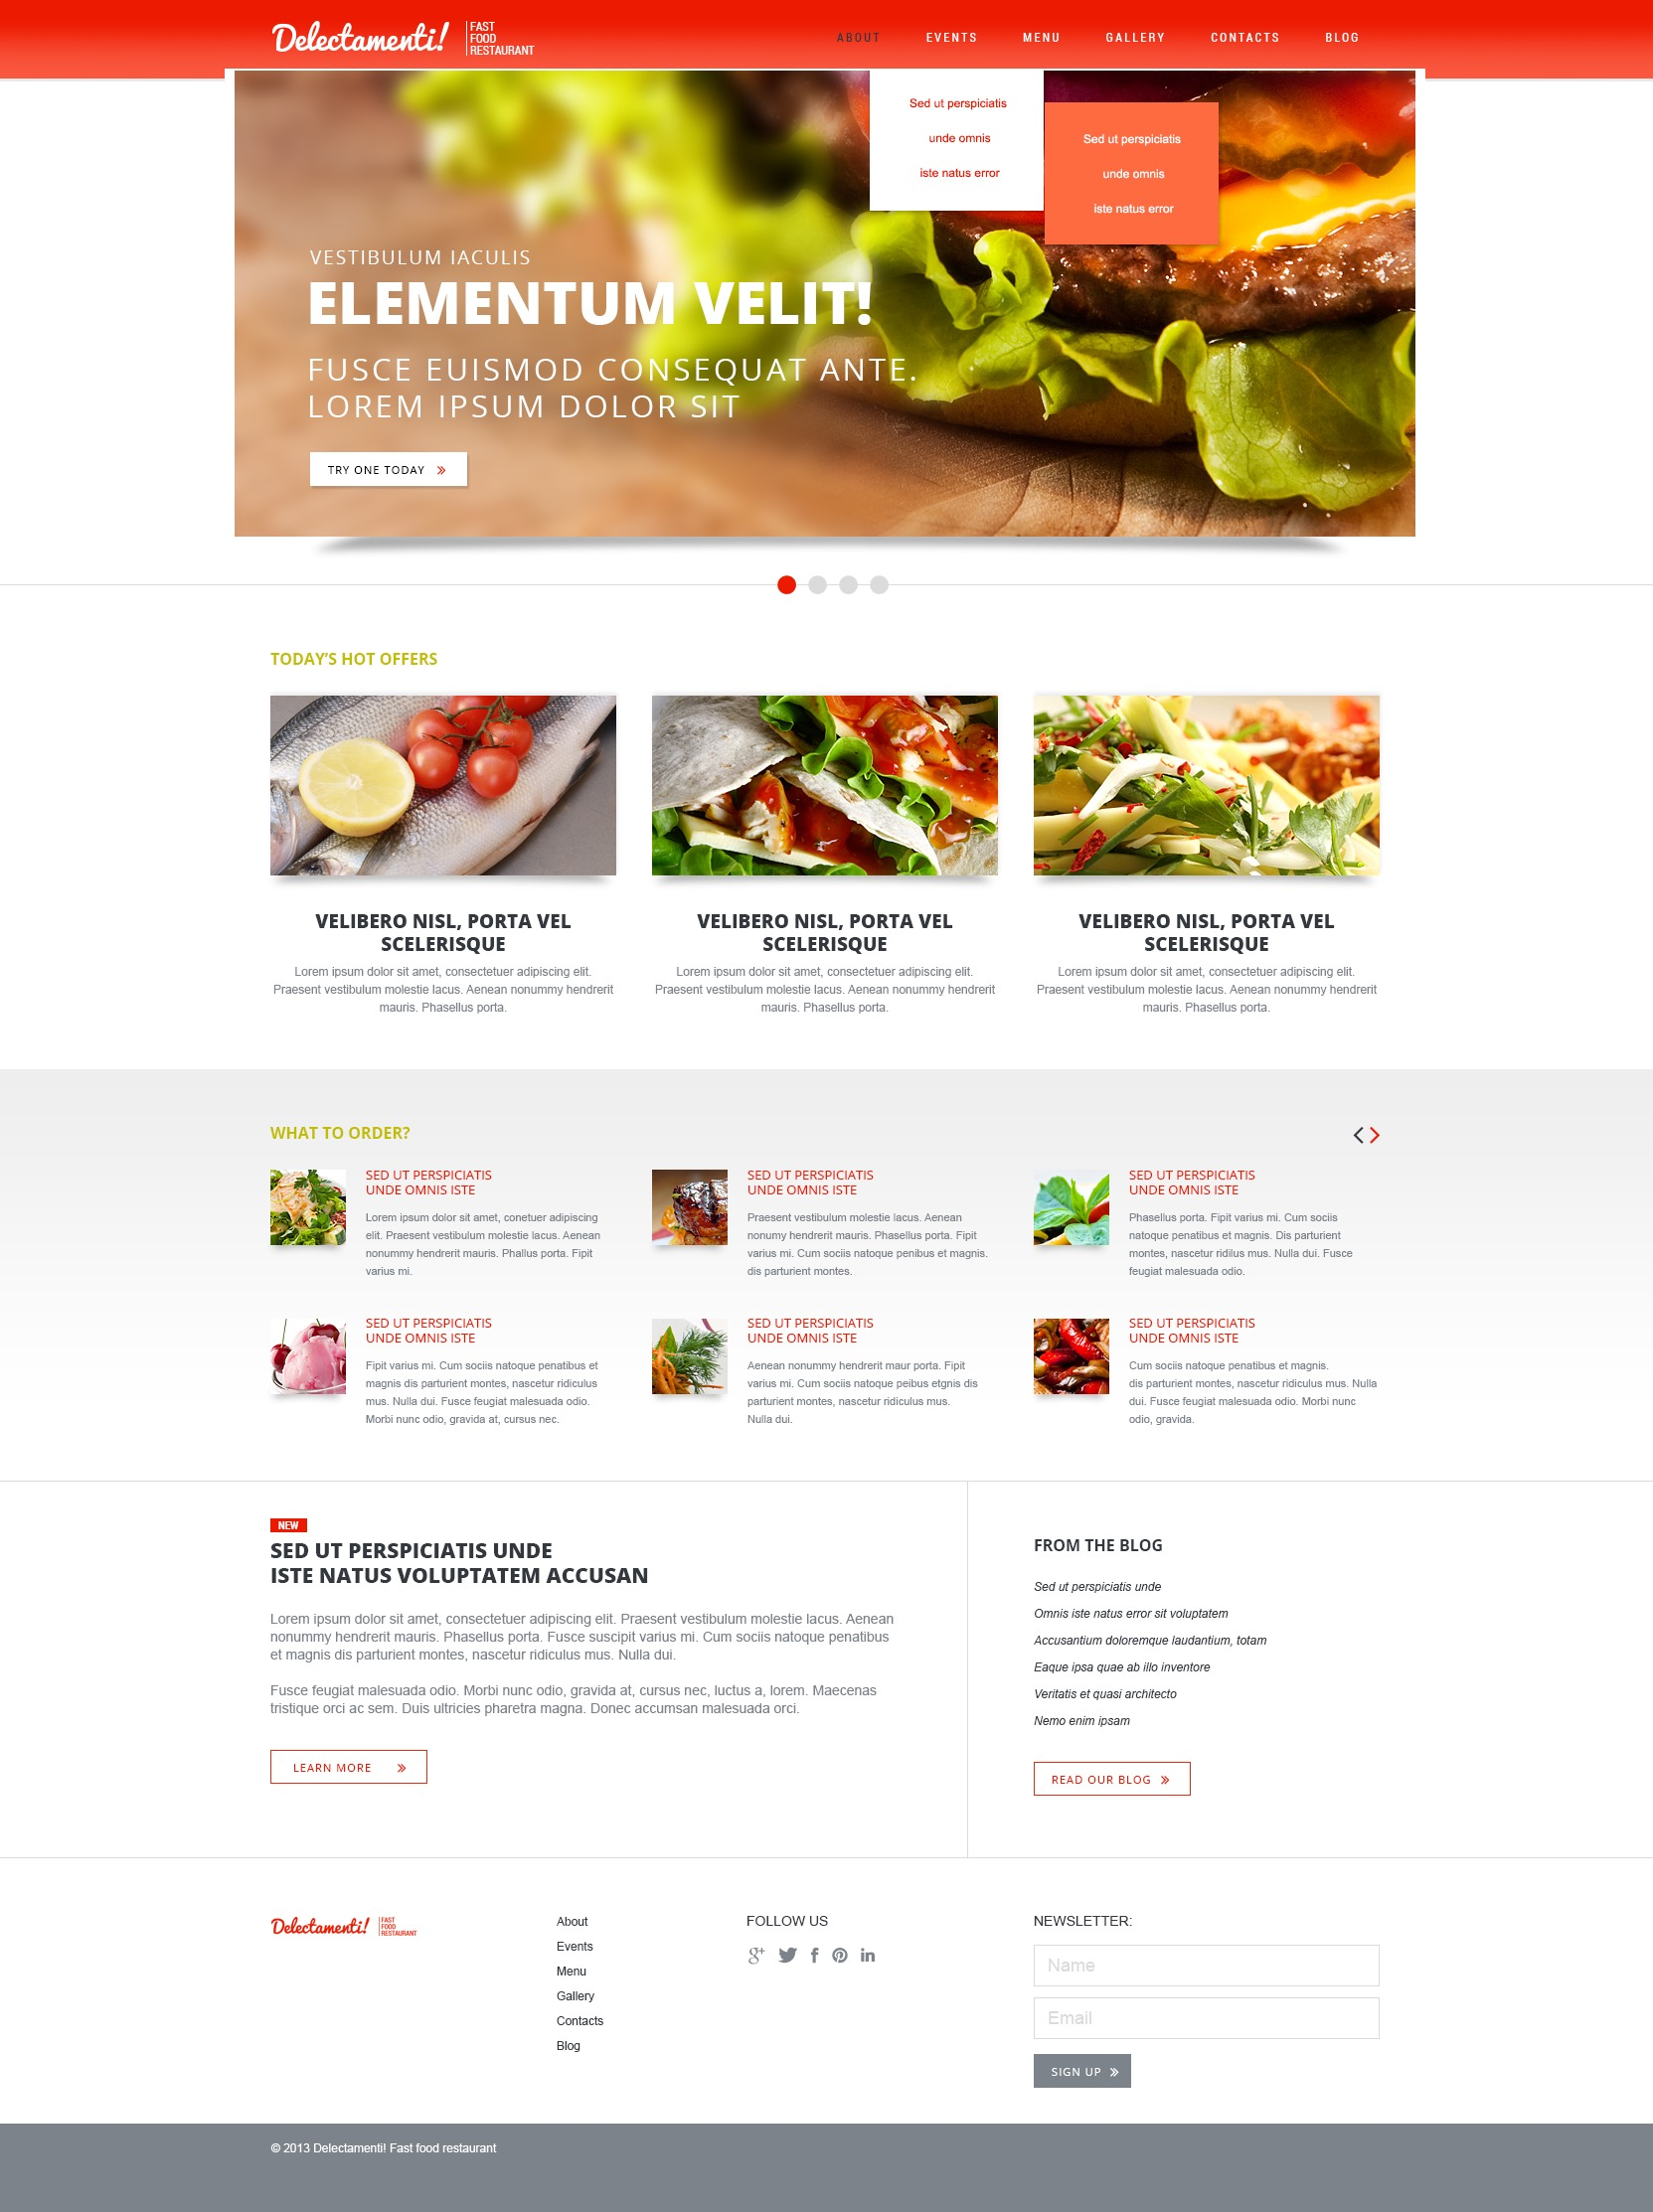 Fast food restaurant joomla template 44275 fast food restaurant joomla template forumfinder Images